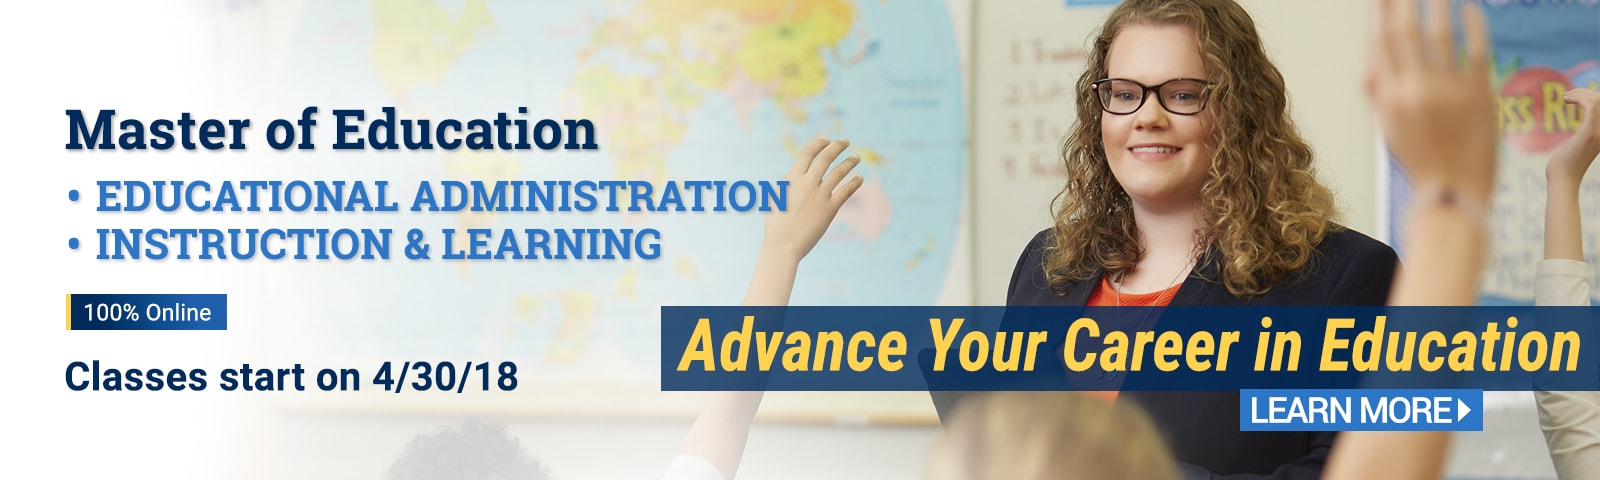 Advance your career in Education through CIU's online degree programs.